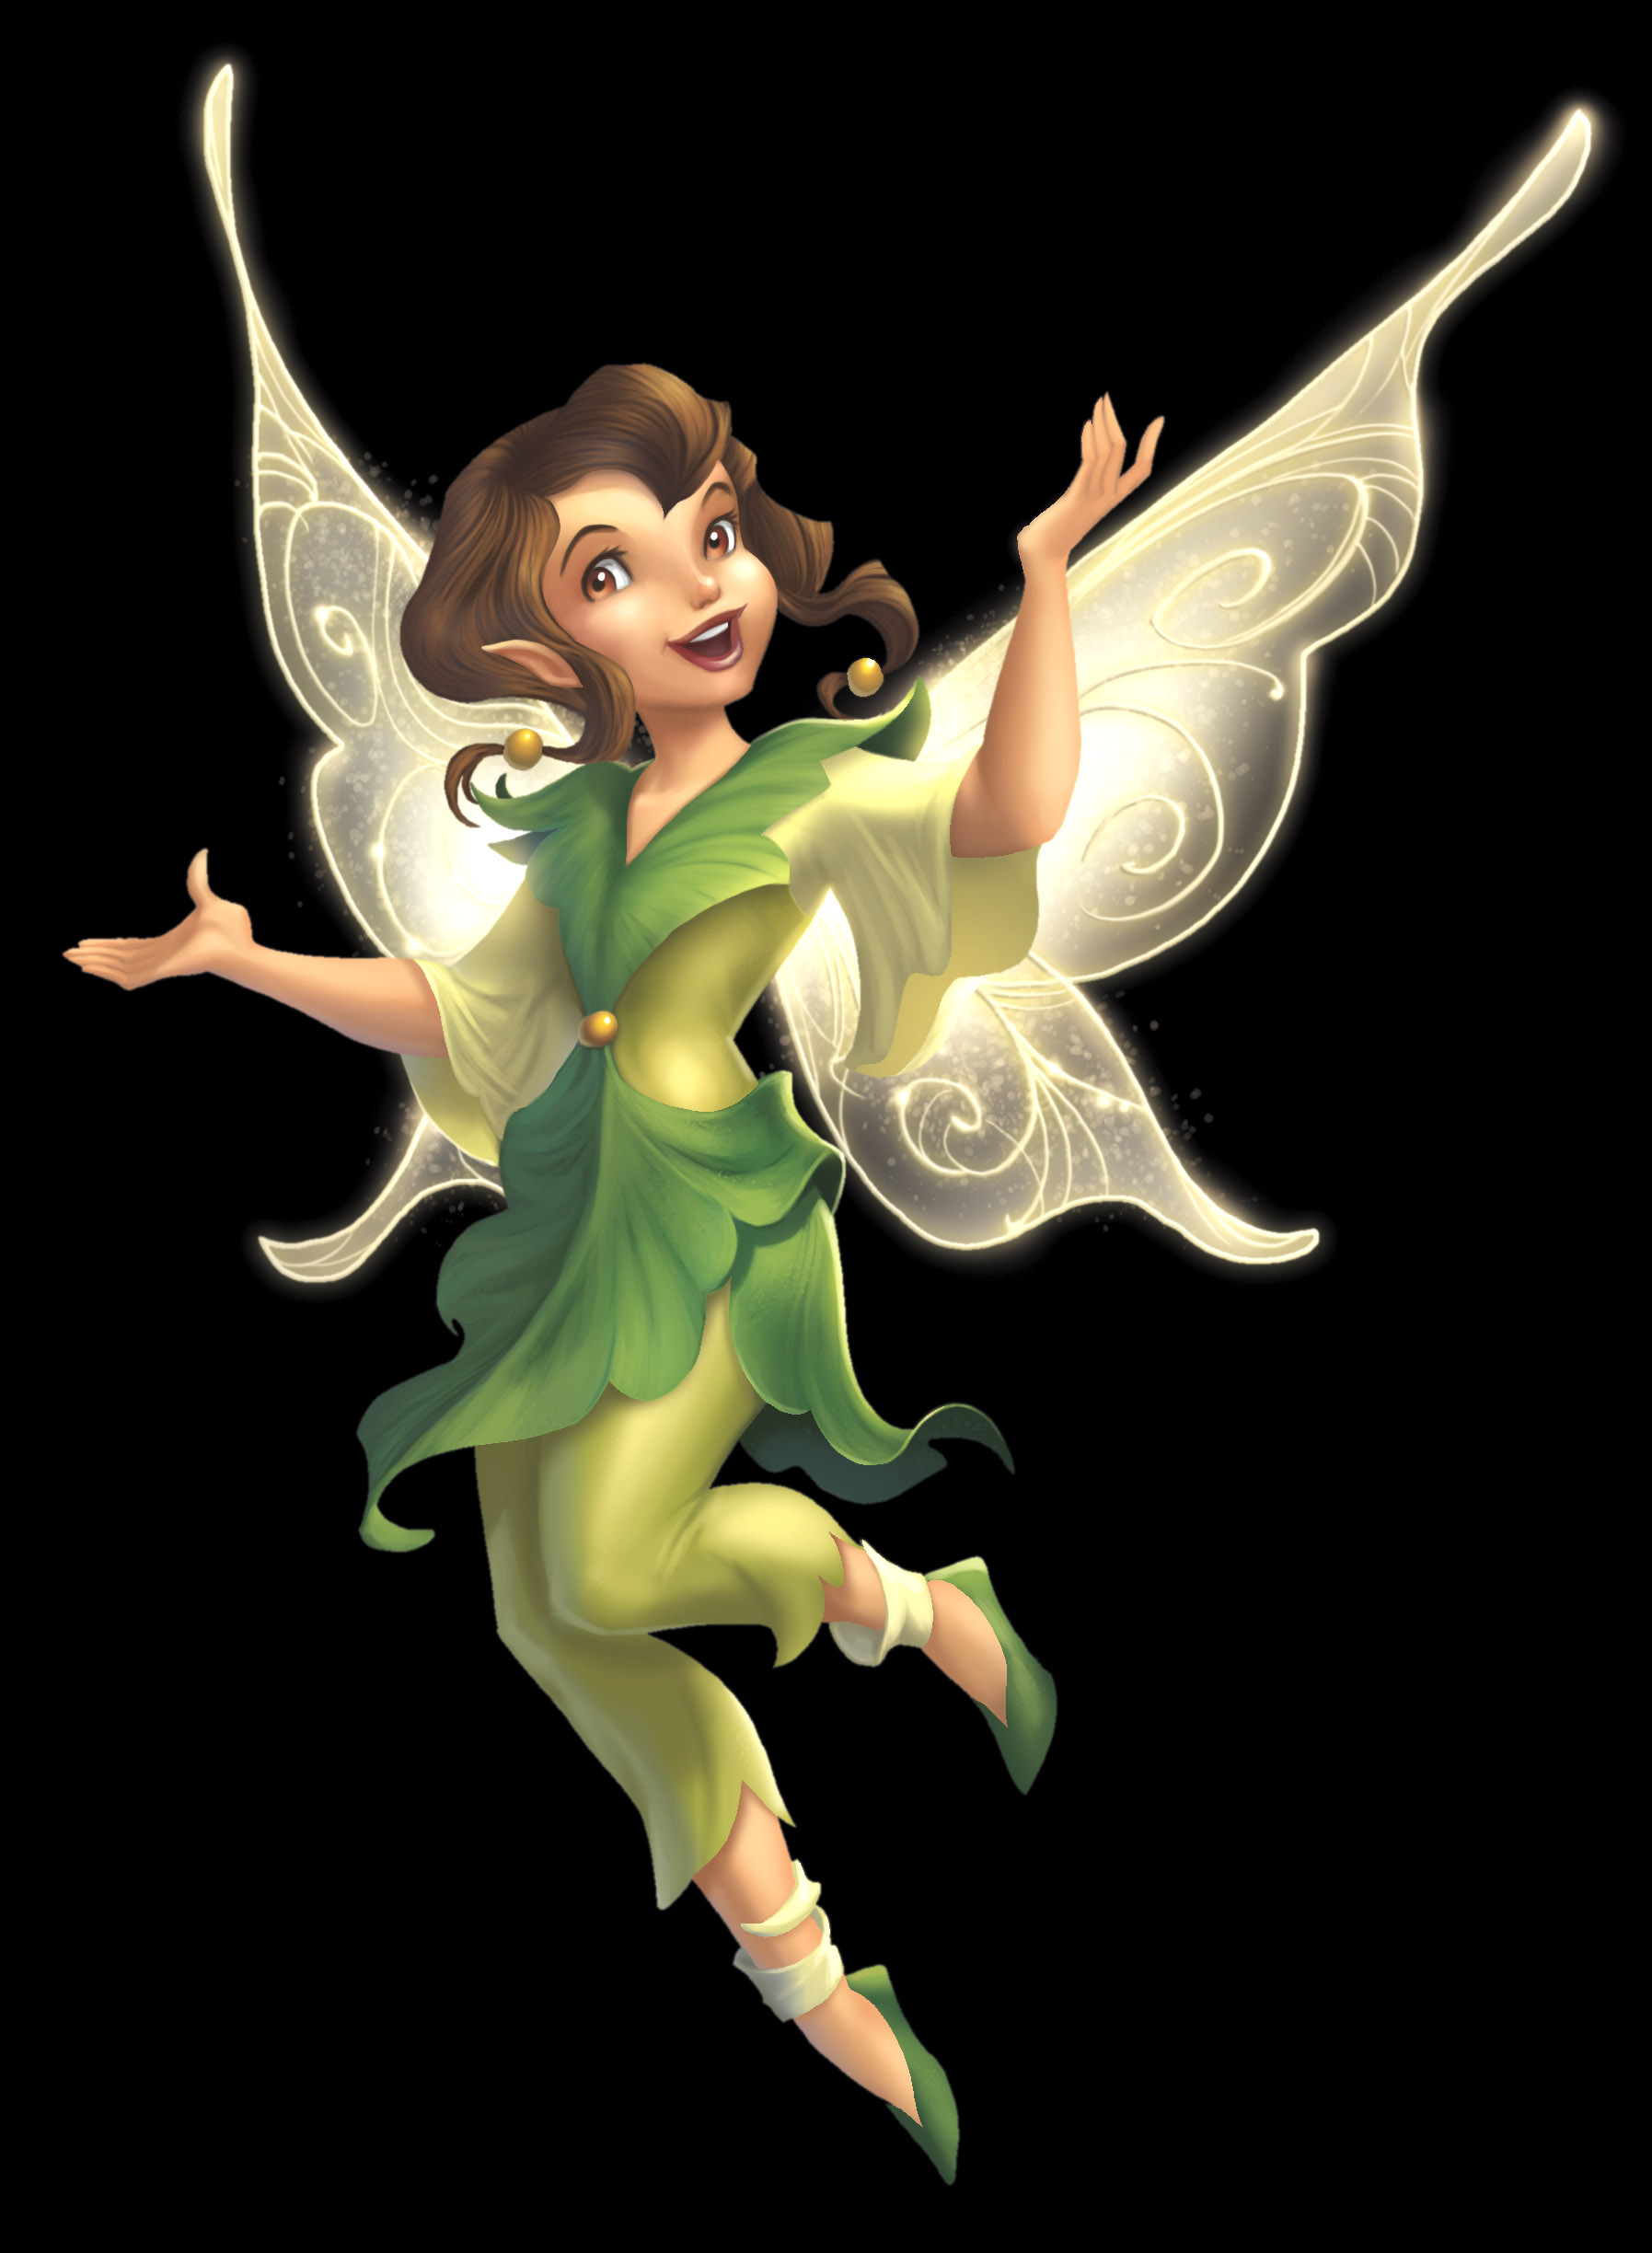 fairies movies images - photo #40